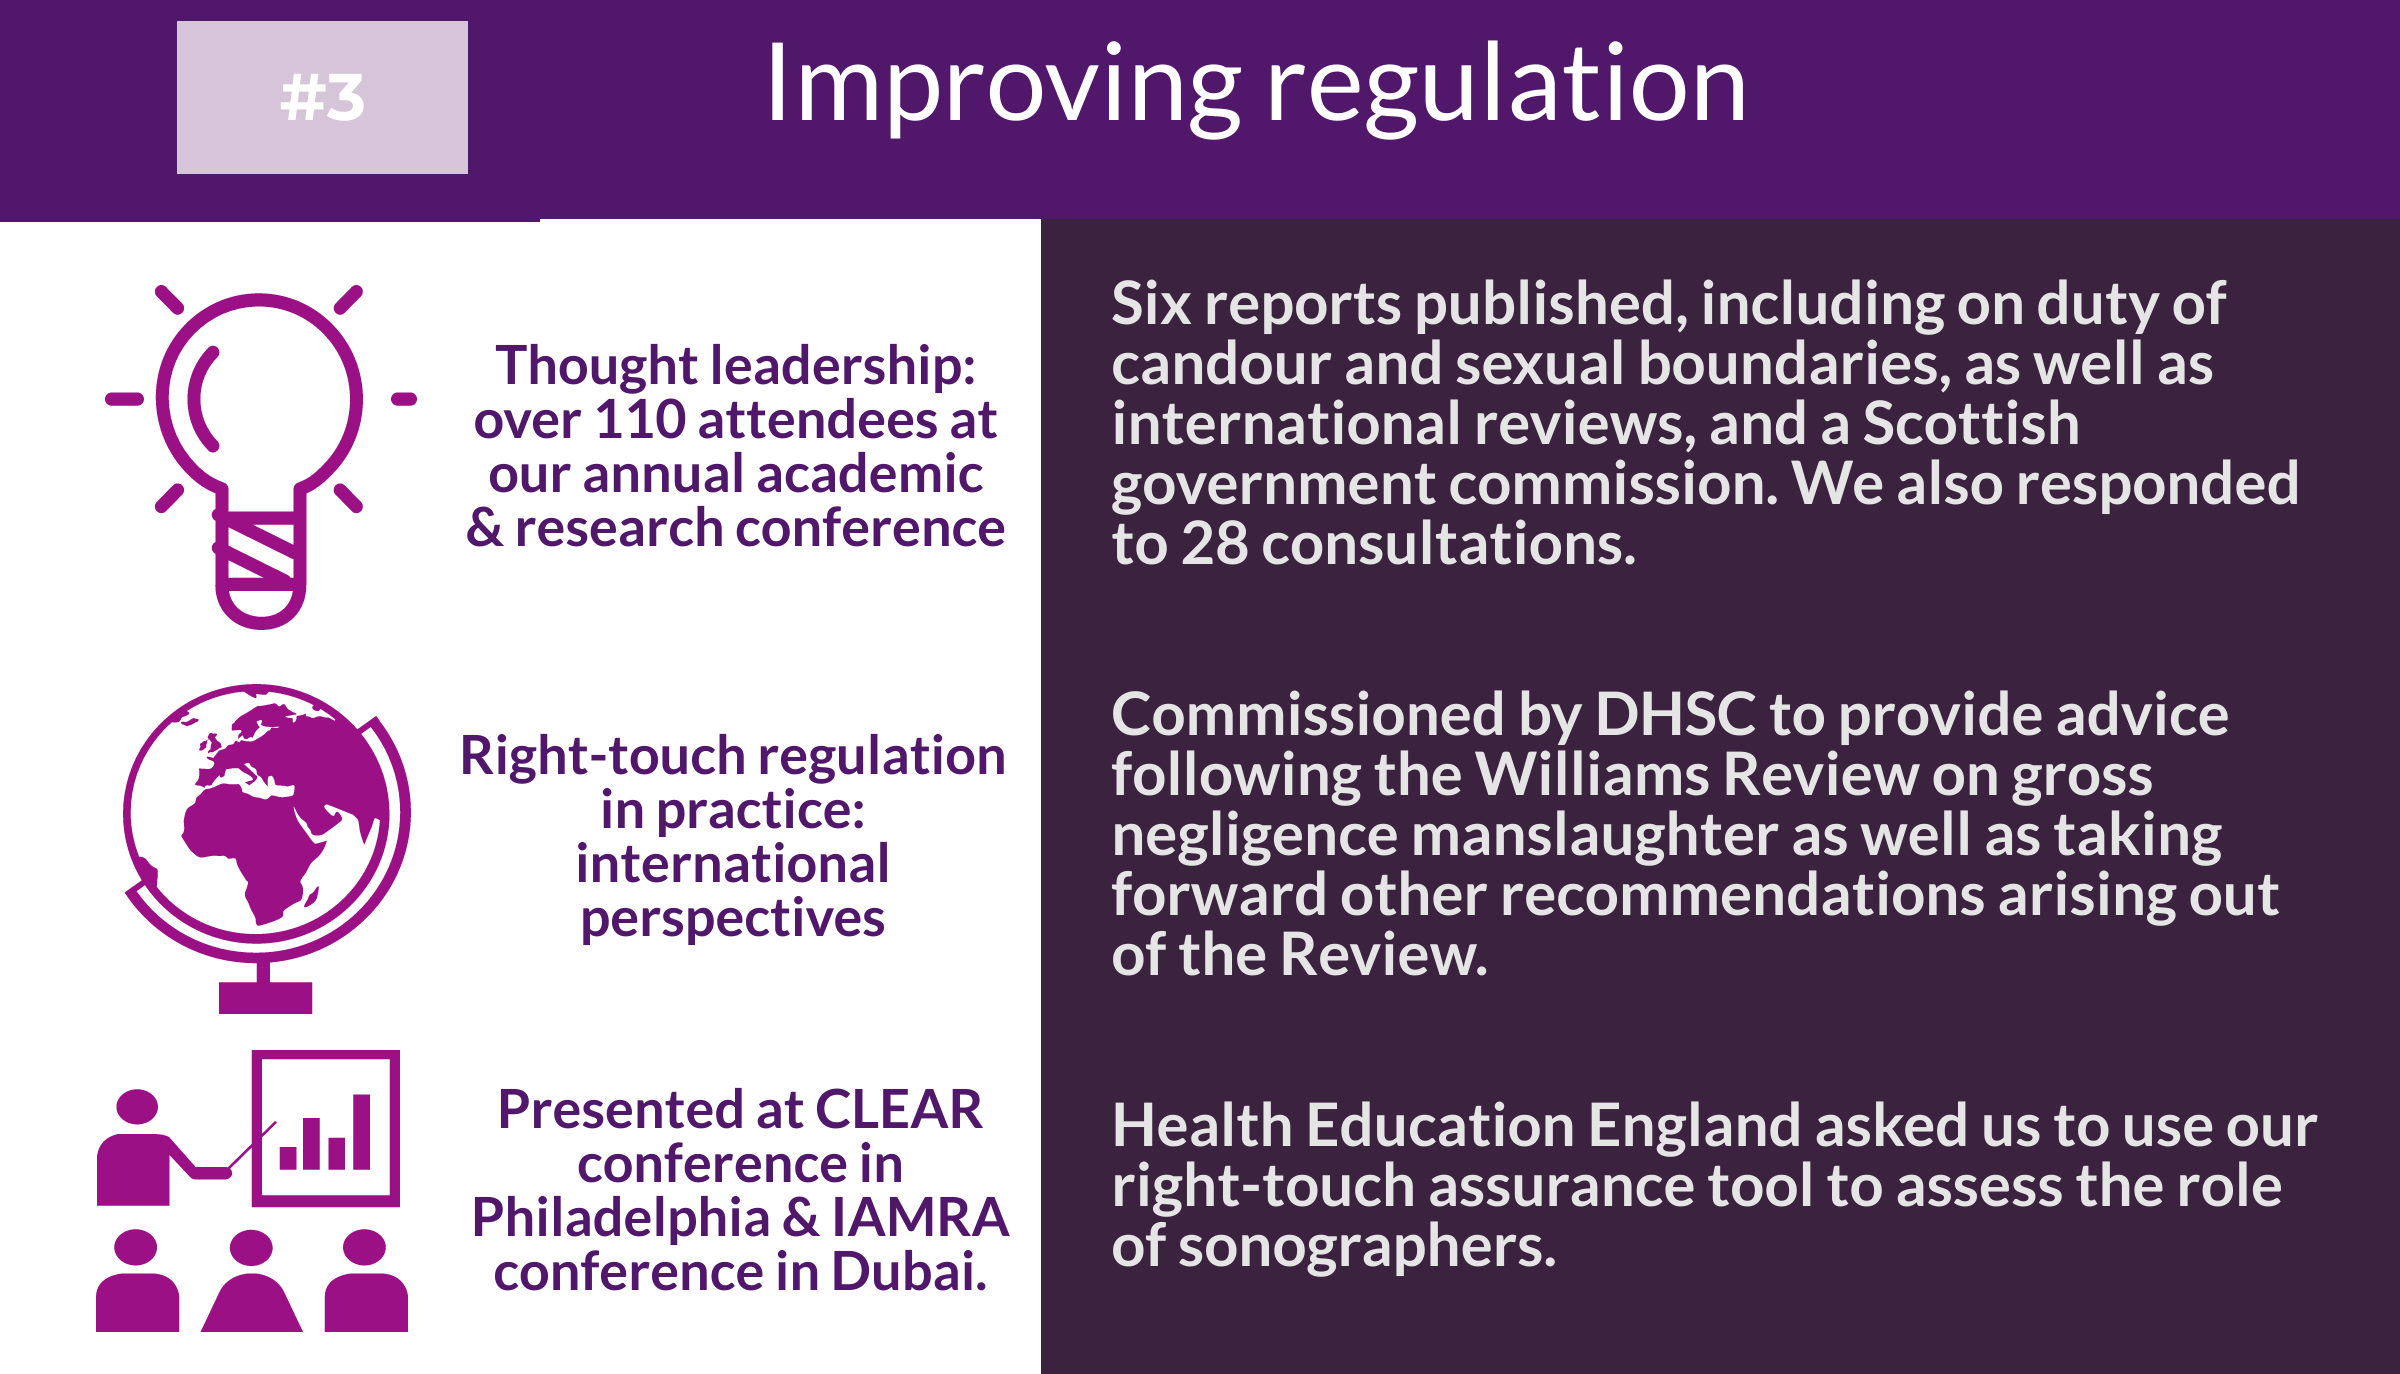 Annual report highlights 2018/19 - improving regulation